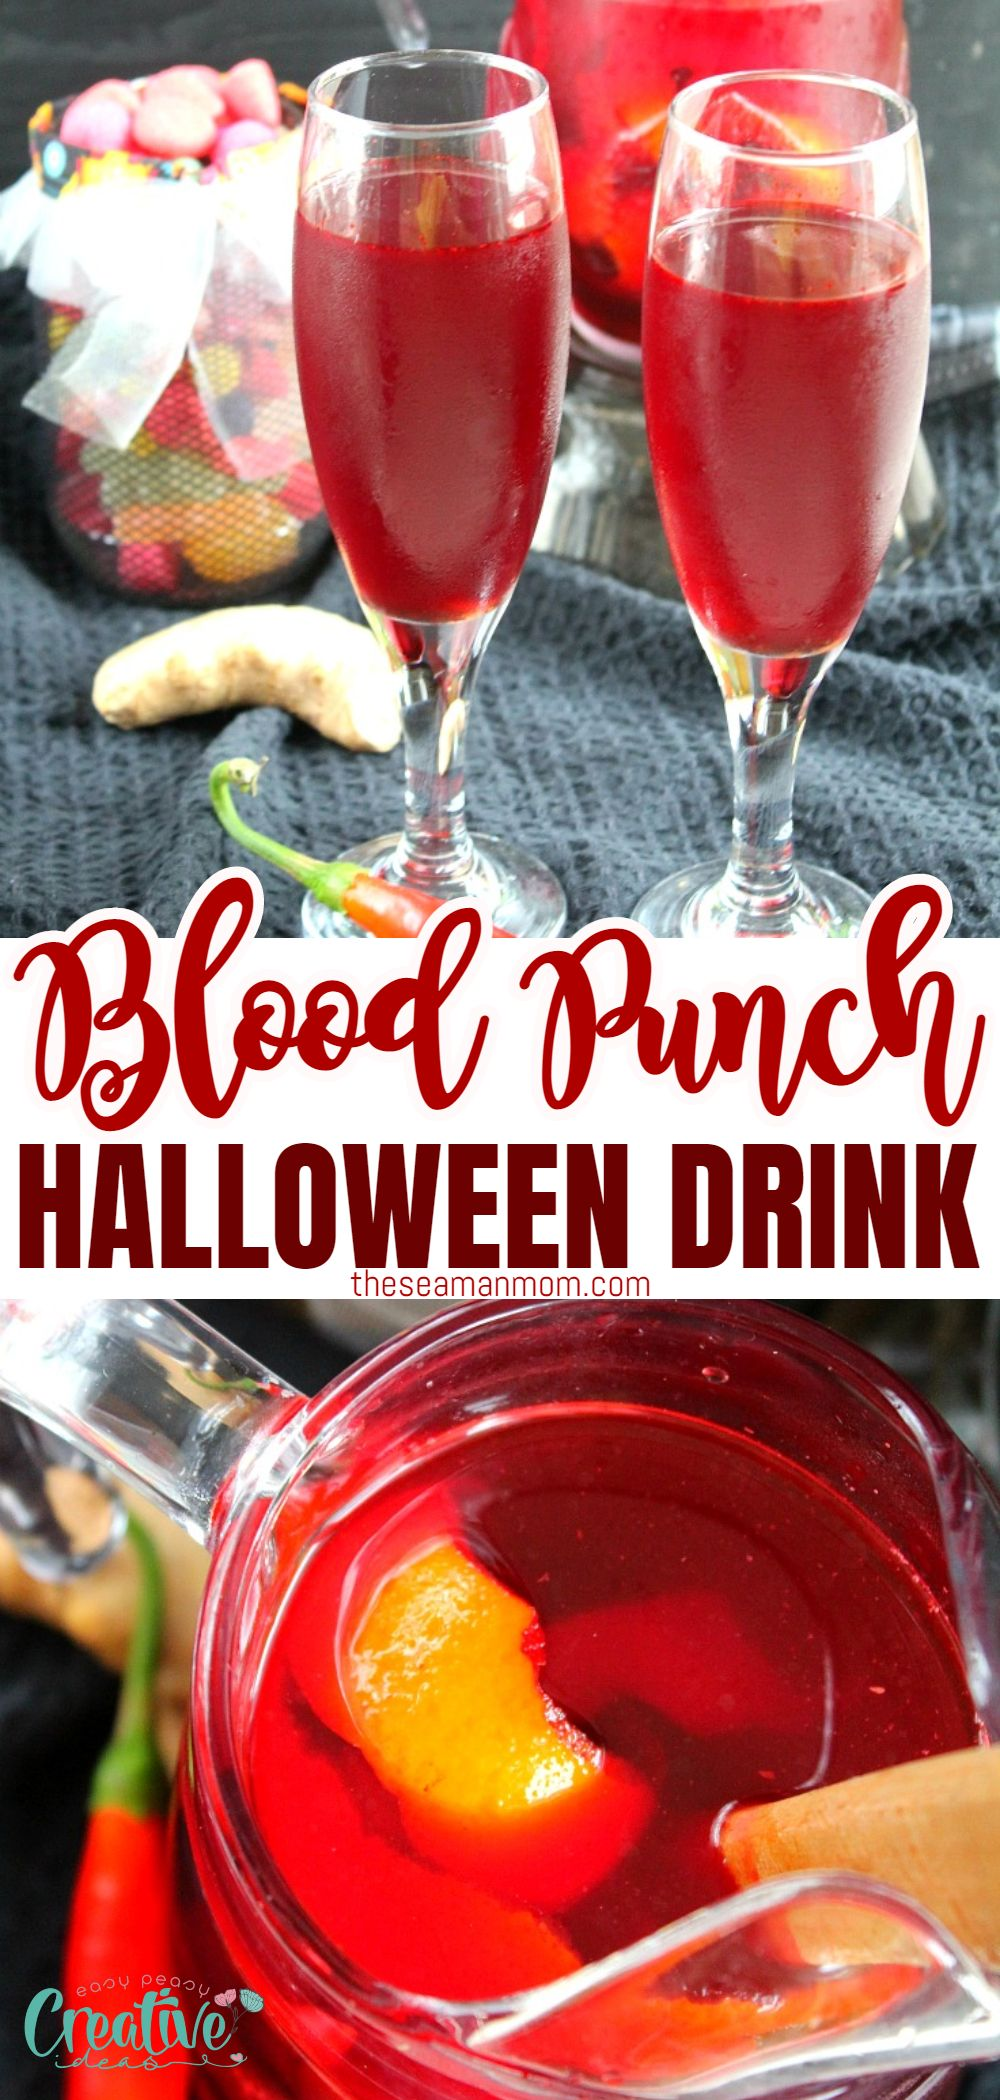 Halloween is all about getting spooky! And what better way to achieve the ultimate Halloween bevvy for your monster bash than a frightening drink like this non alcoholic blood punch recipe? via @petroneagu